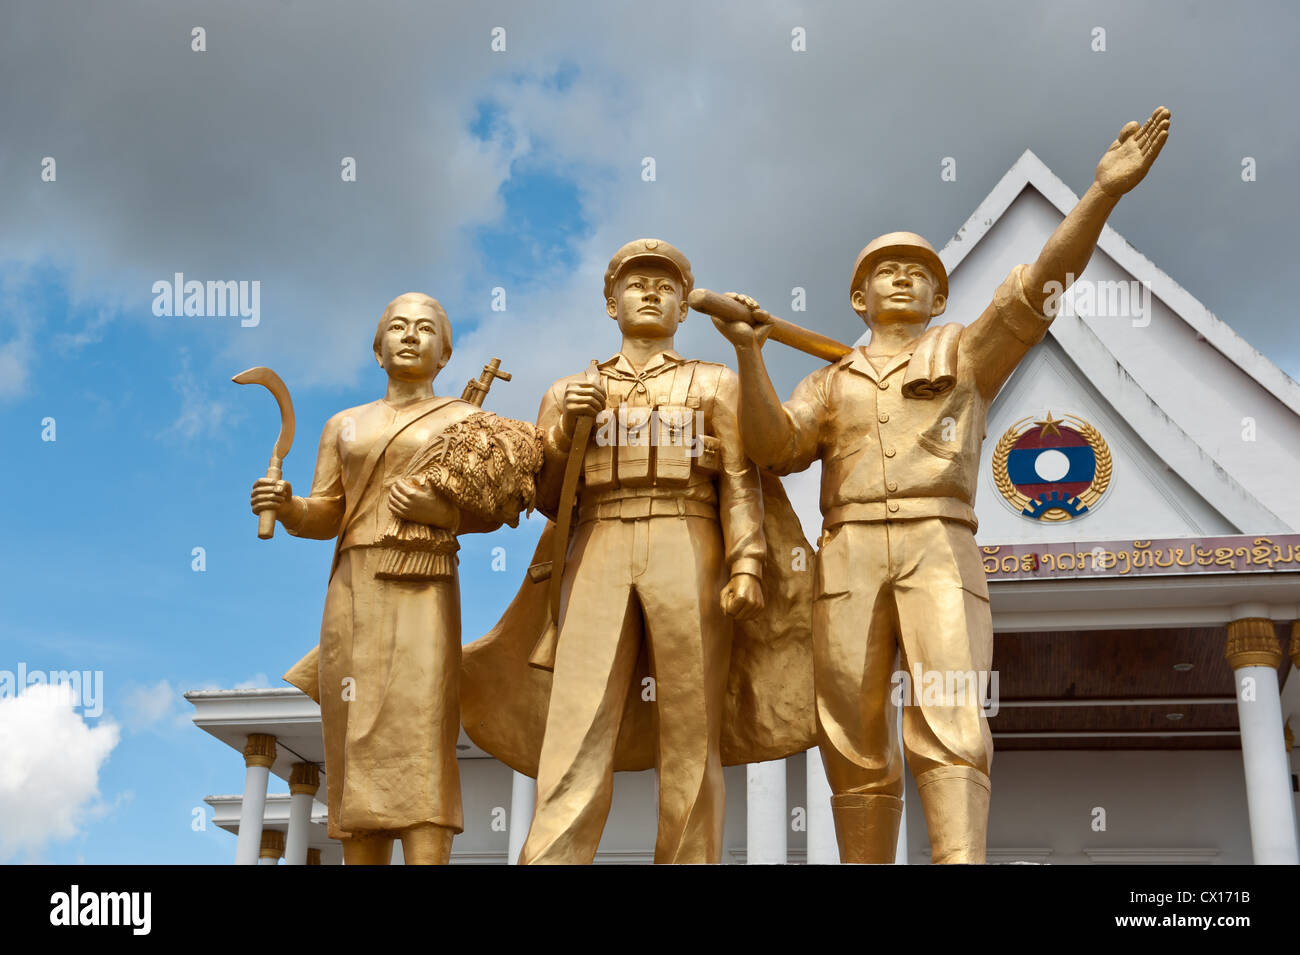 Monument at Lao People's Army History Museum in Vientiane, Laos. Stock Photo